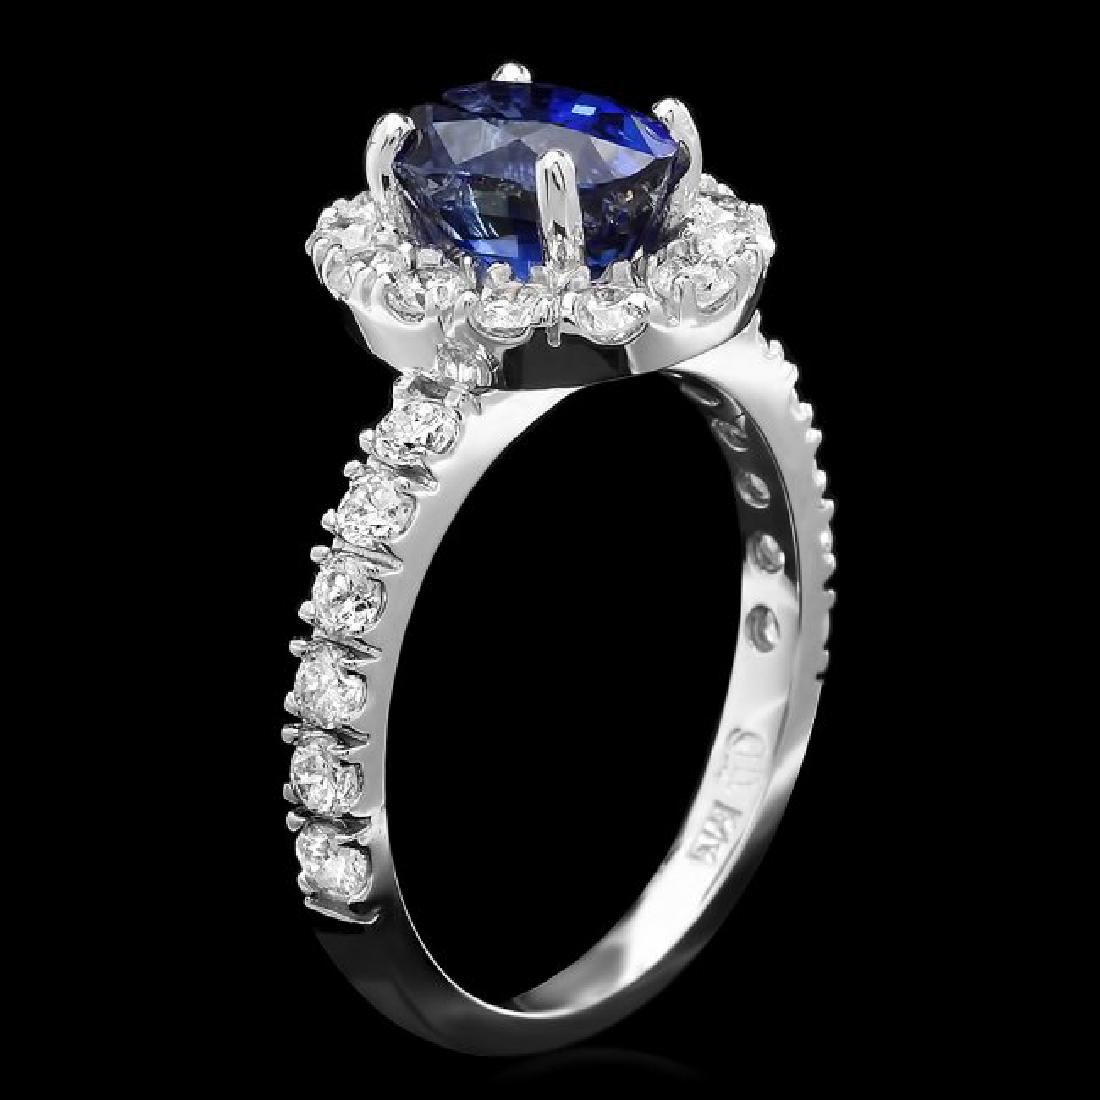 14k Gold 2.40ct Sapphire 1.00ct Diamond Ring - 2